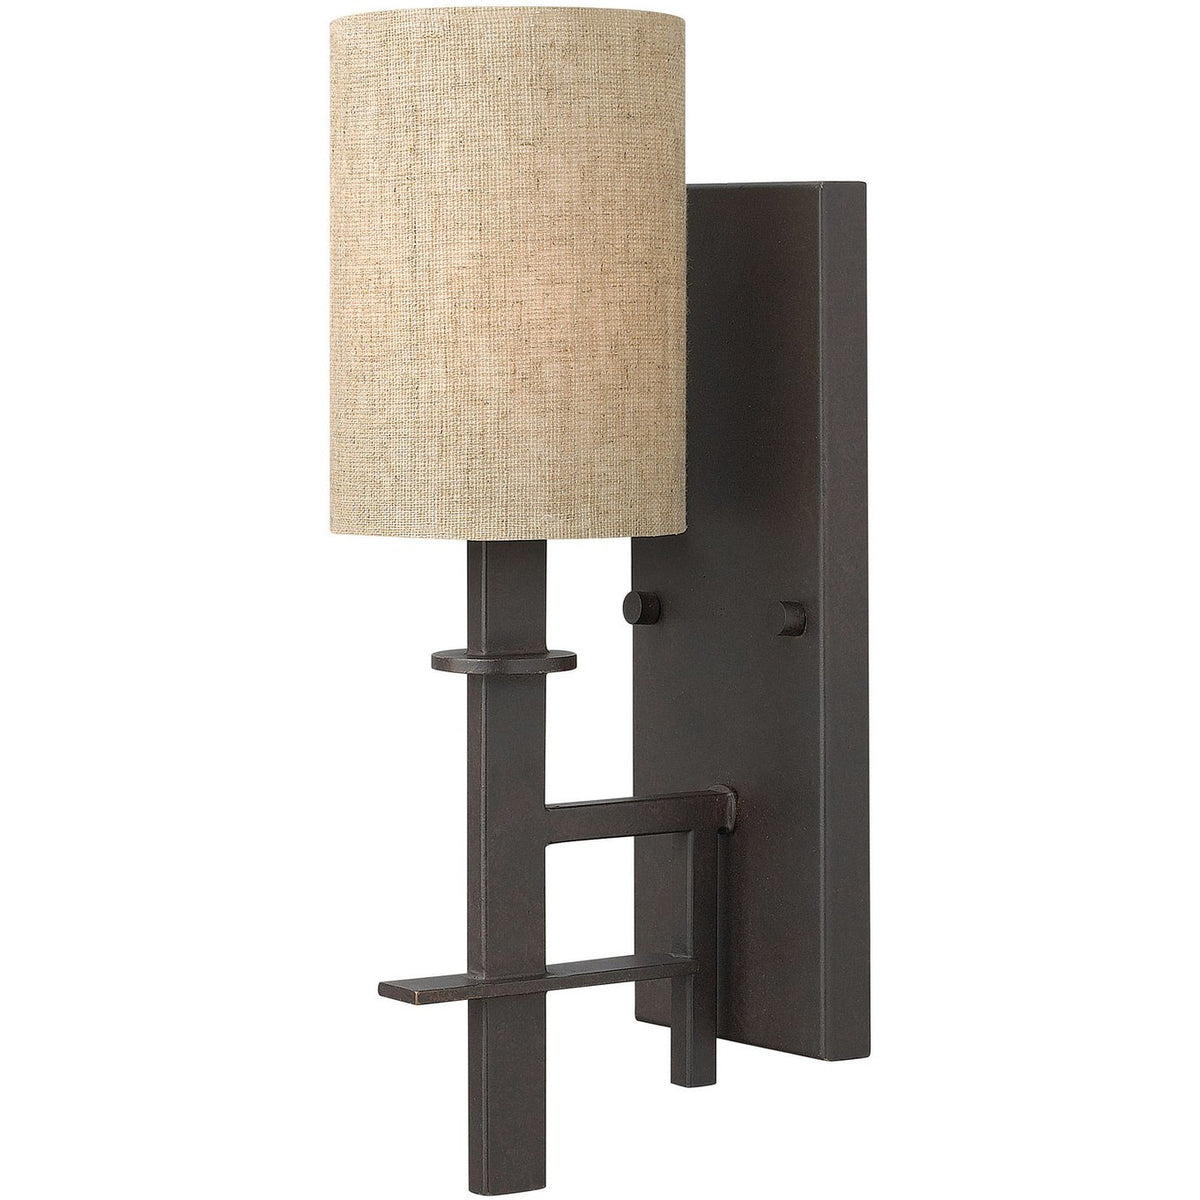 Hinkley Canada - 4540RB - One Light Wall Sconce - Sloan - Regency Bronze